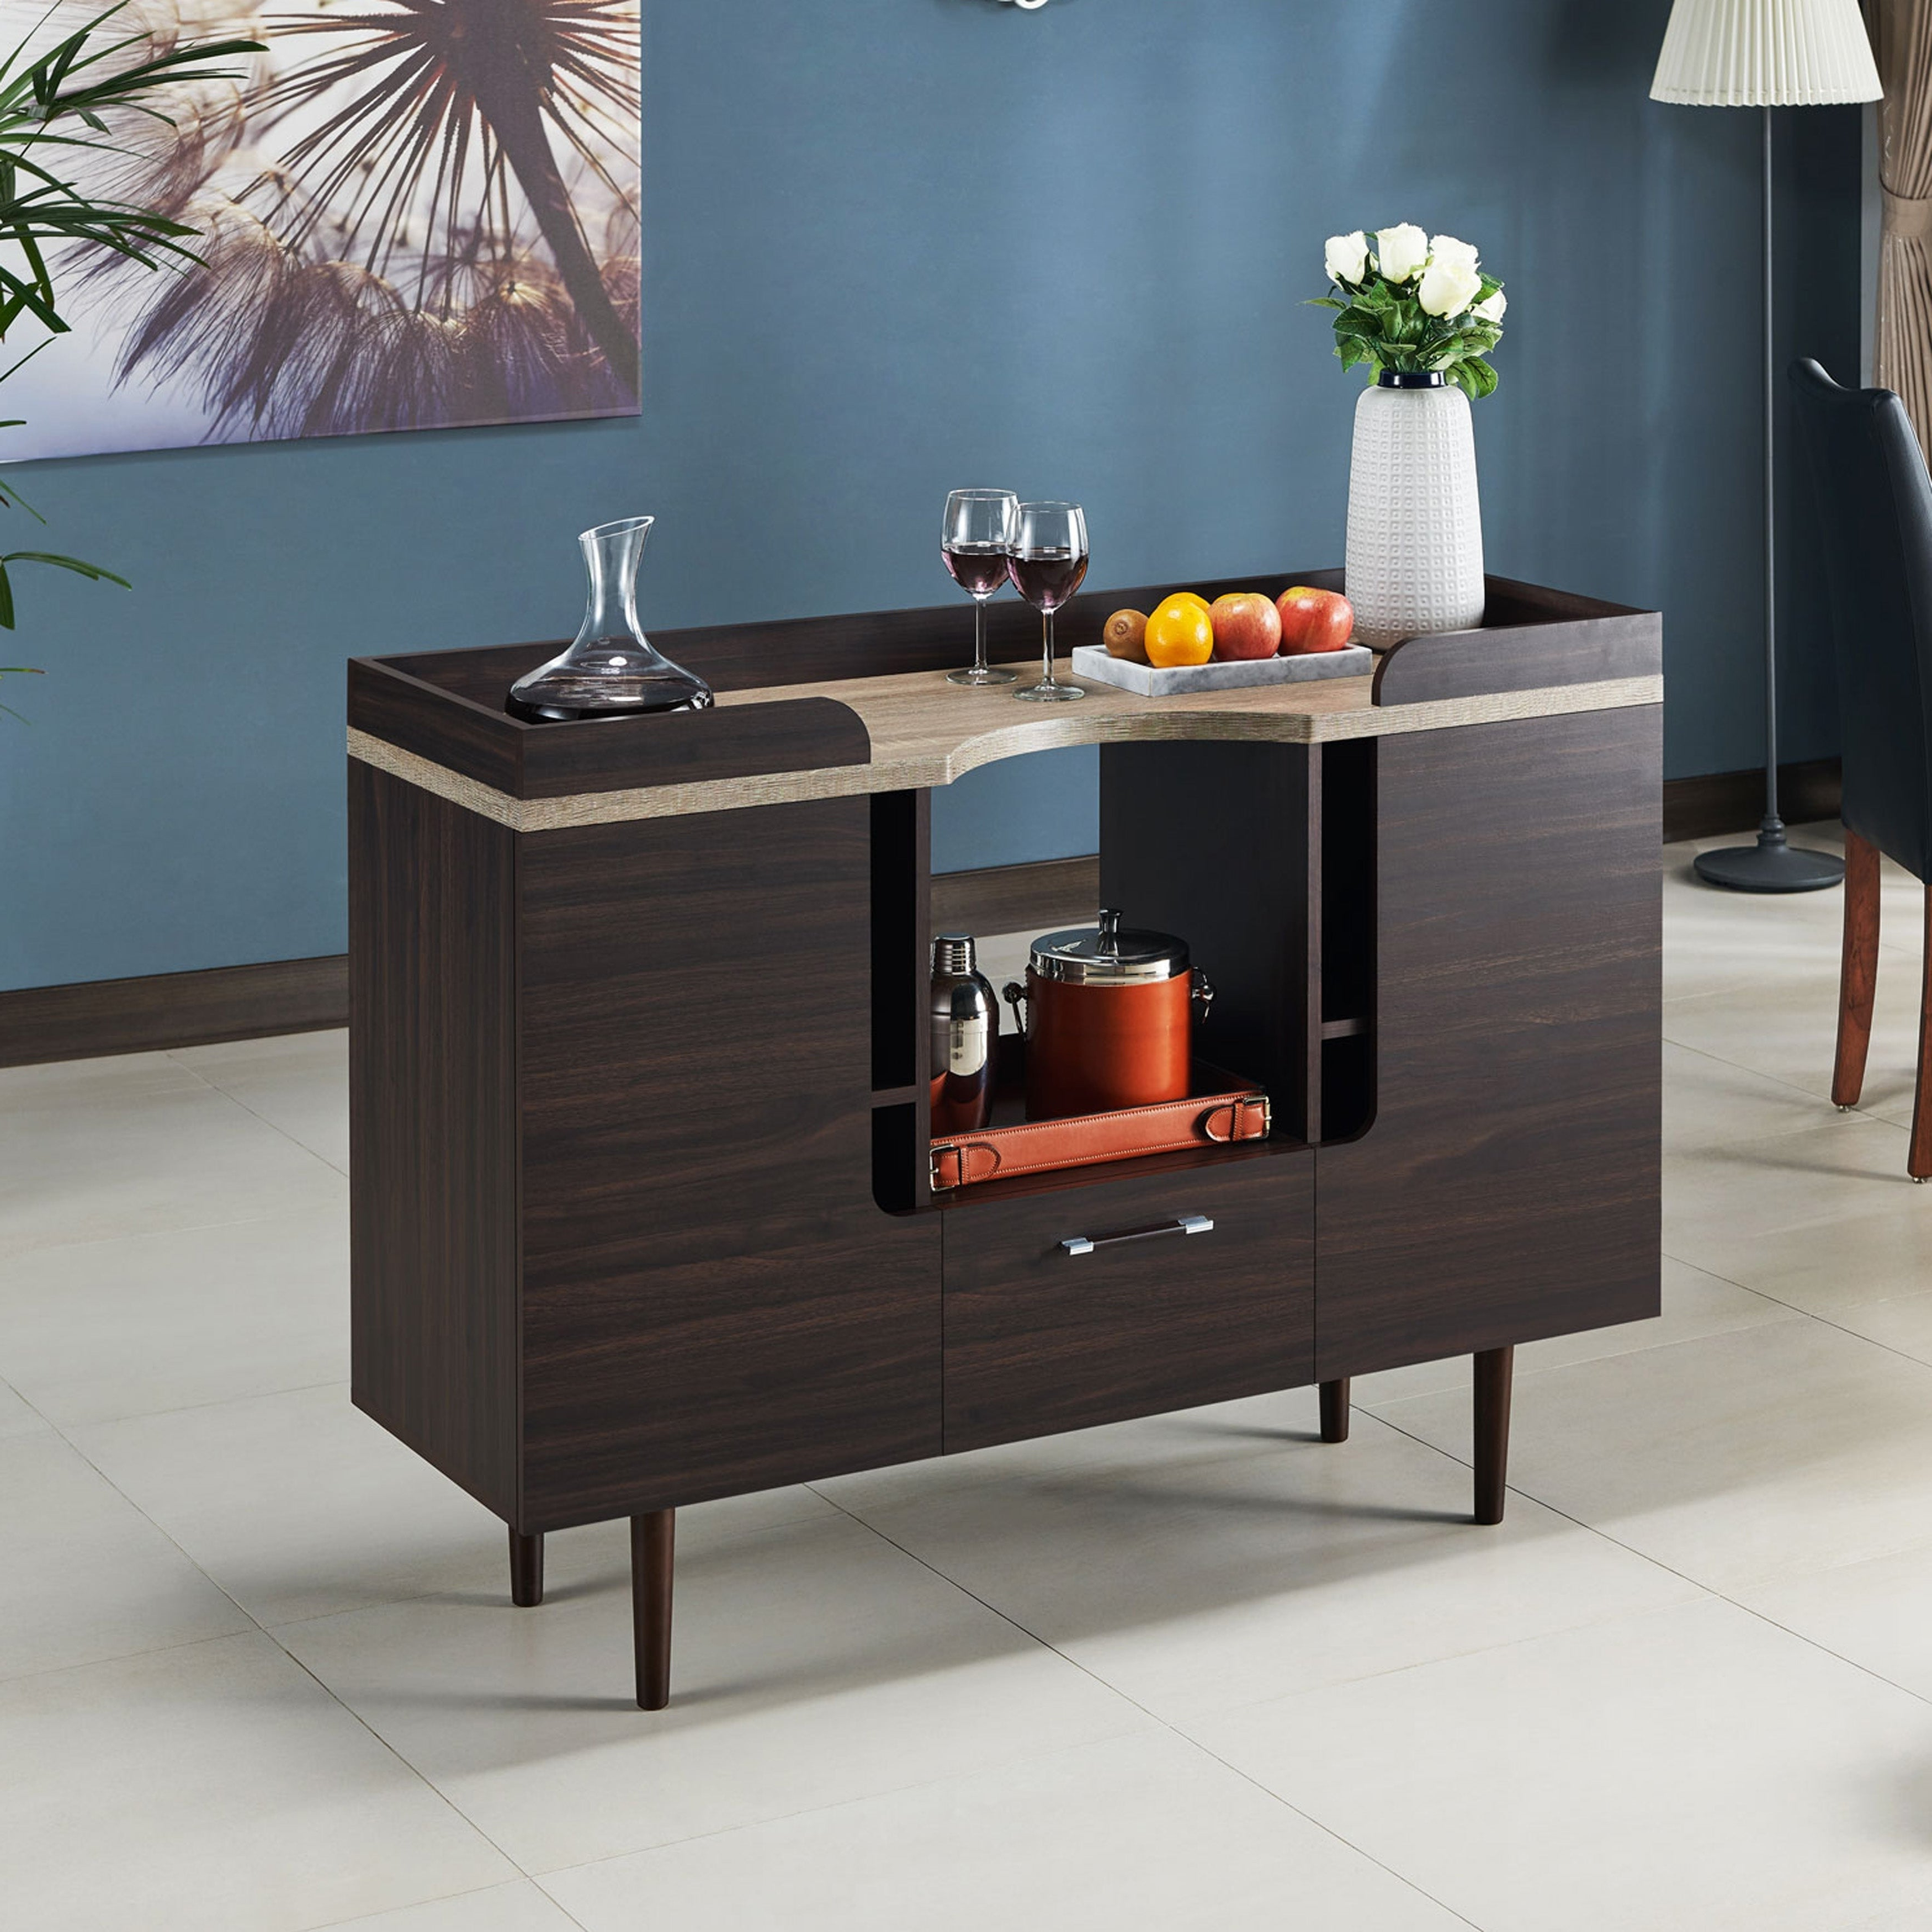 Pattermon Mid Century Modern Two Tone Wenge Buffet Serverfoa Throughout Modern Mid Century Buffets (View 15 of 20)